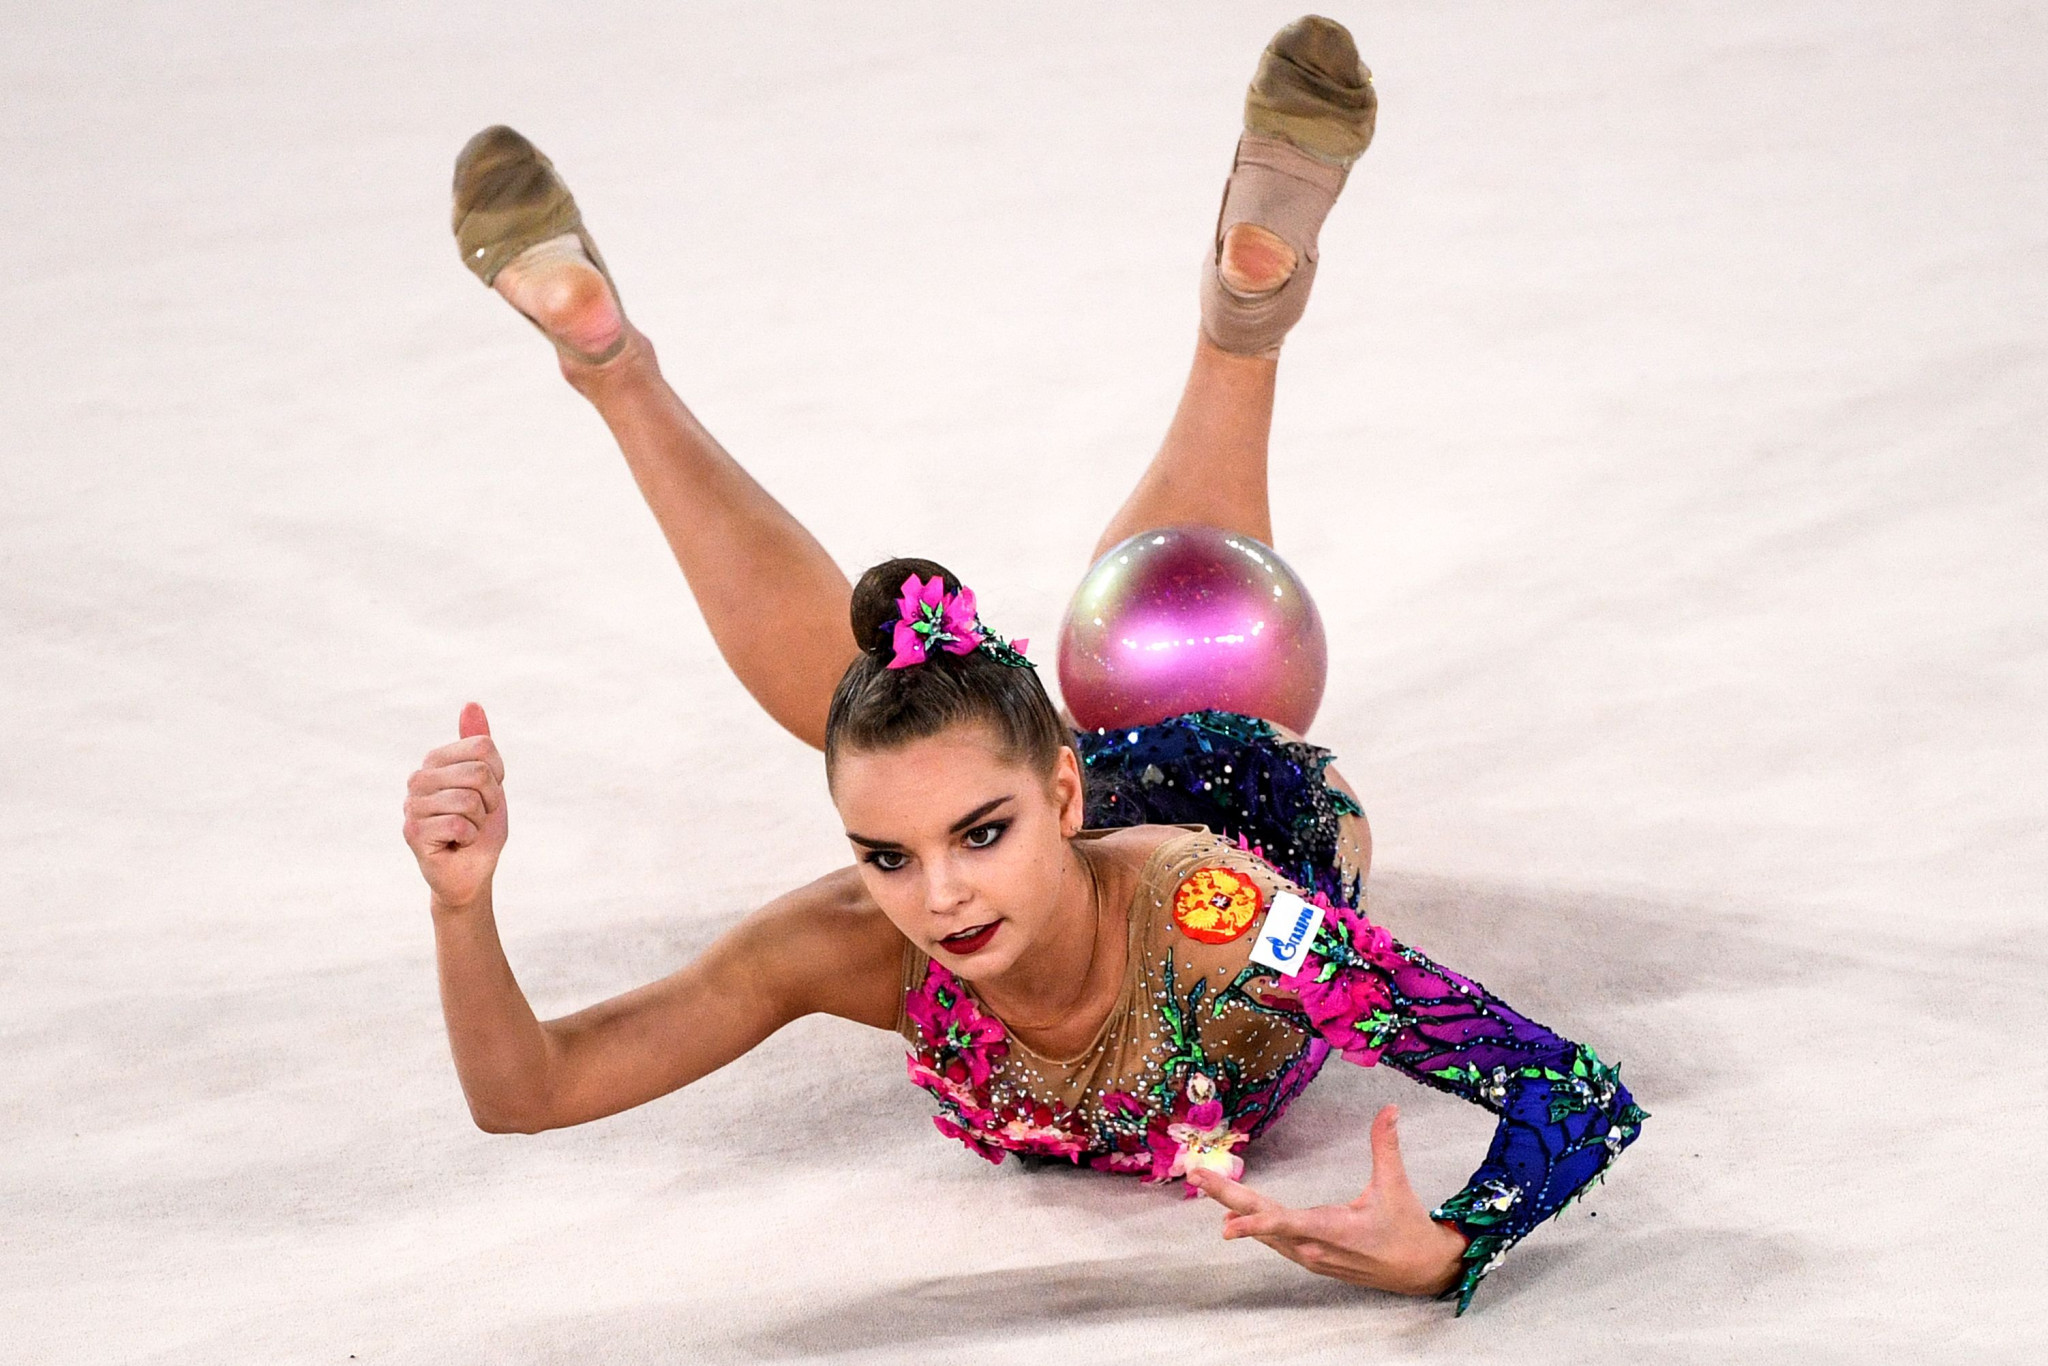 Three gold medals for Dina Averina on final day of European Rhythmic Gymnastics Championships